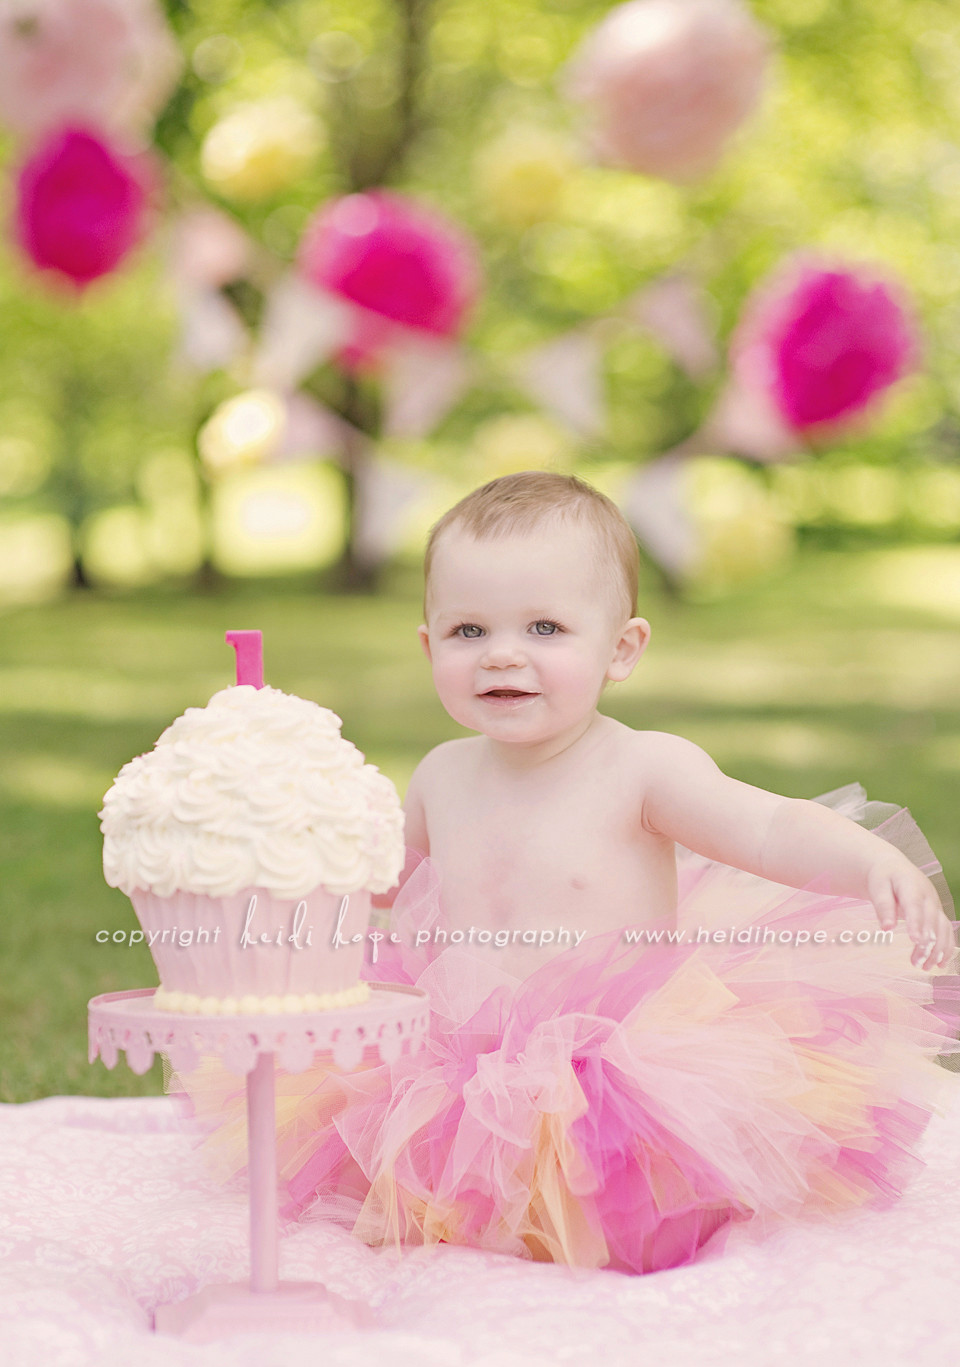 Best ideas about 1st Birthday Smash Cake . Save or Pin Baby K turns 1 year old Rhode Island first birthday cake Now.